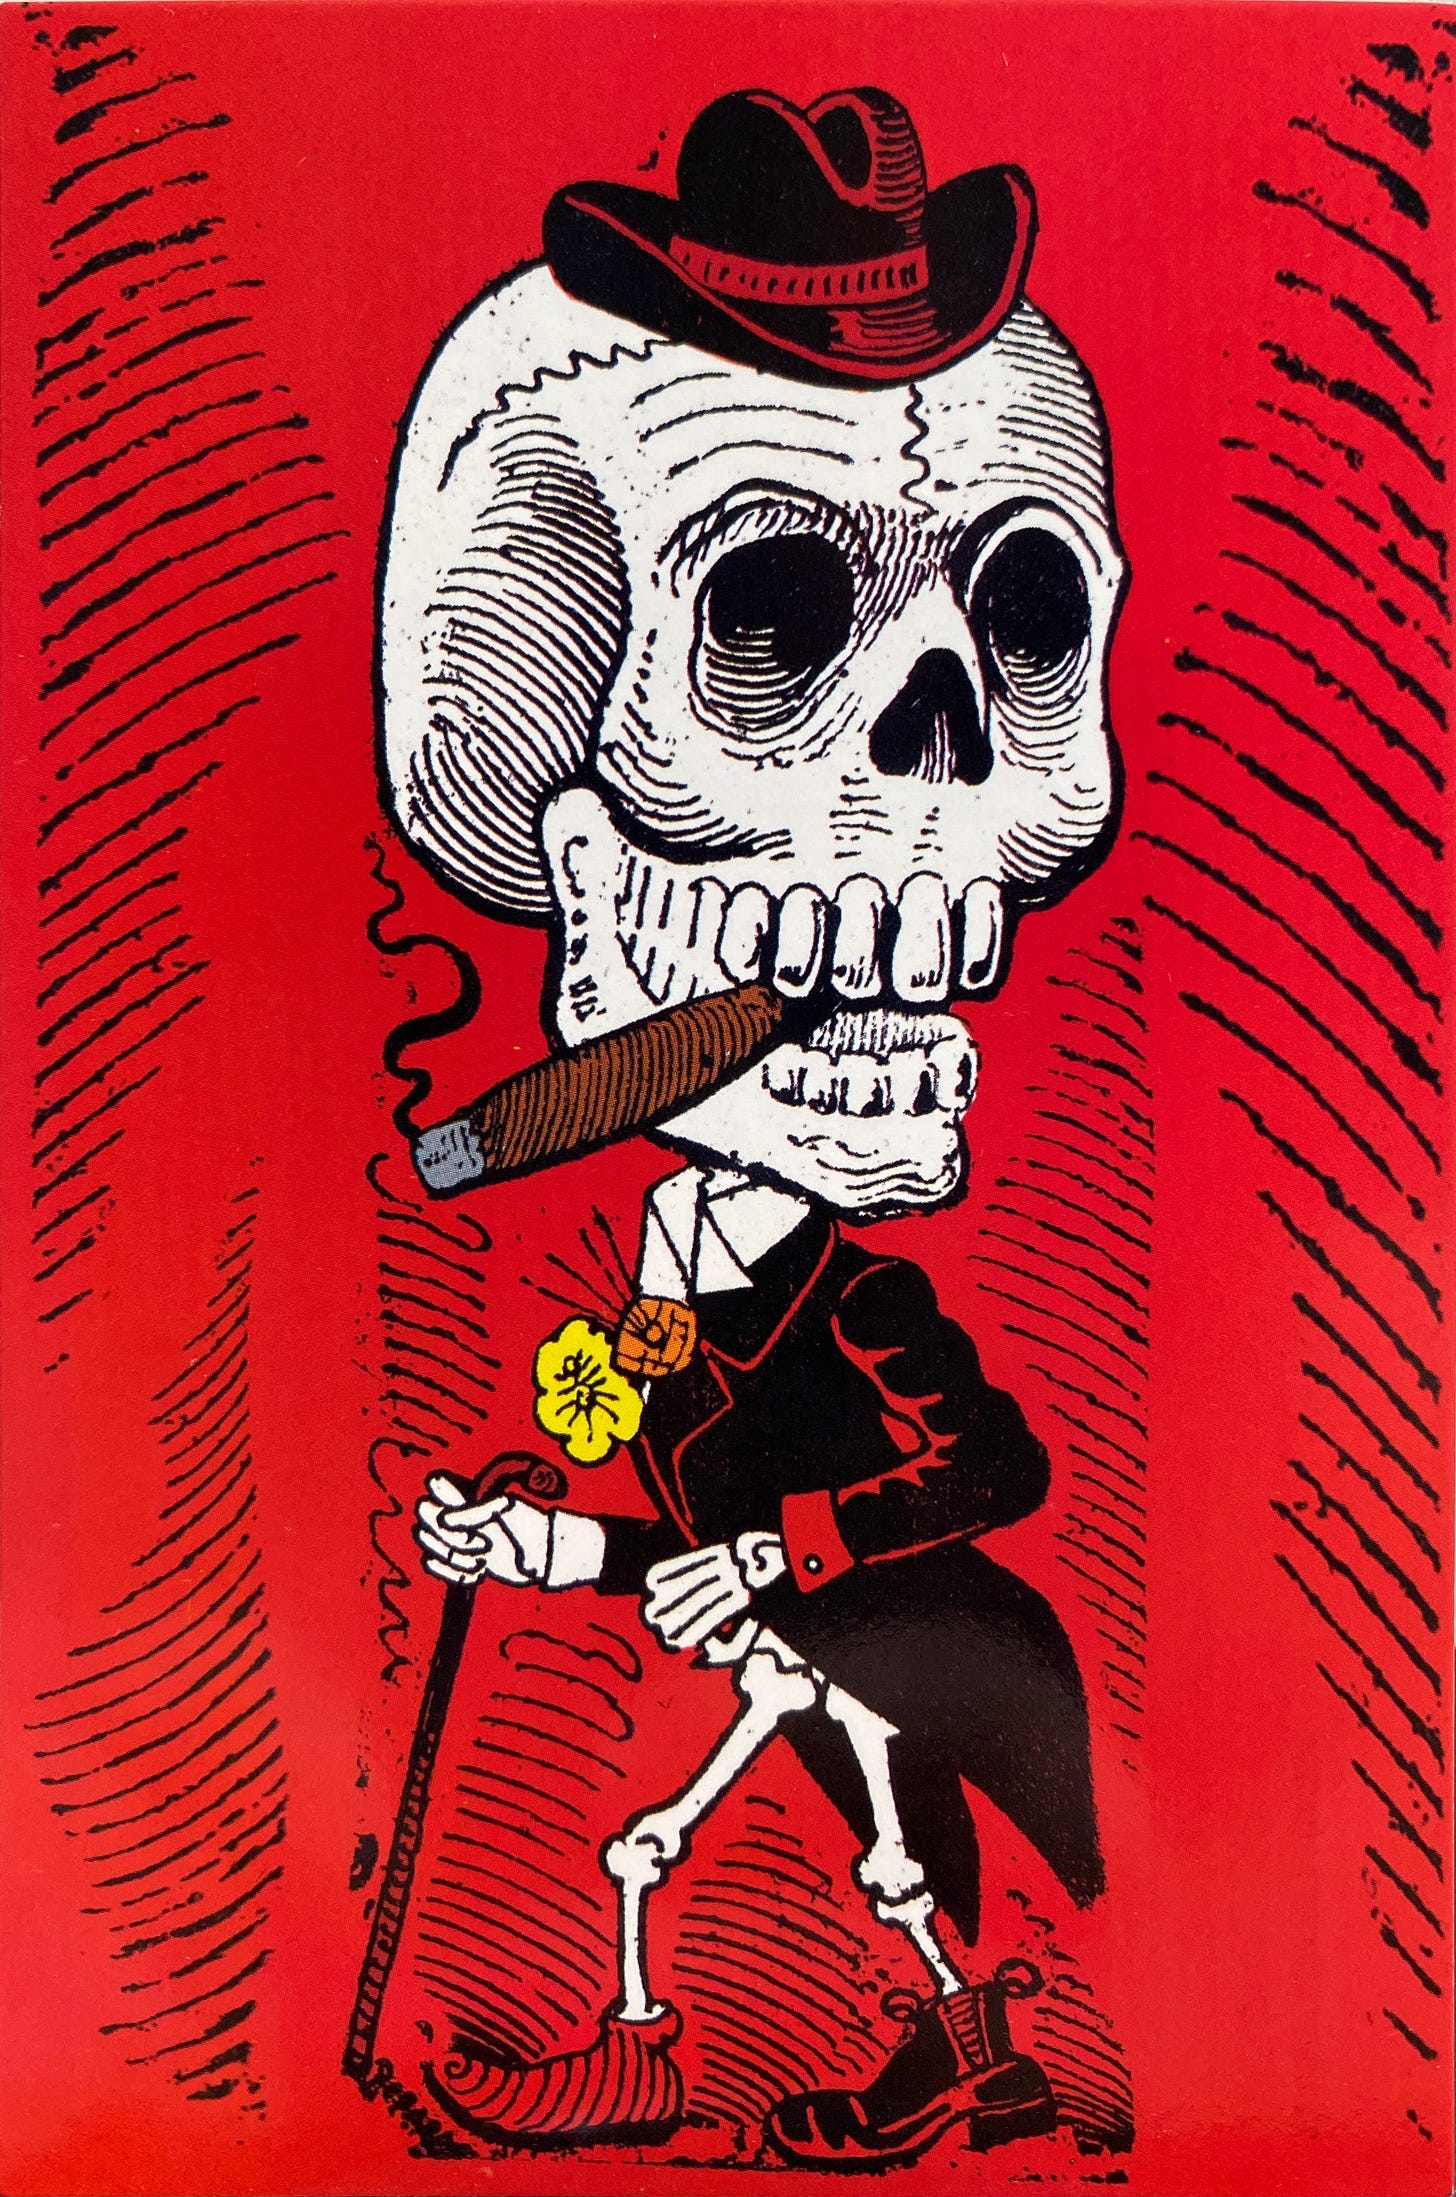 A skeleton standing, wearing an elegant frock with a flower on their lapel and a hat on their head. The skeleton doesn't have pants but wears shoes and a cane. Their cranium is as large as their body.